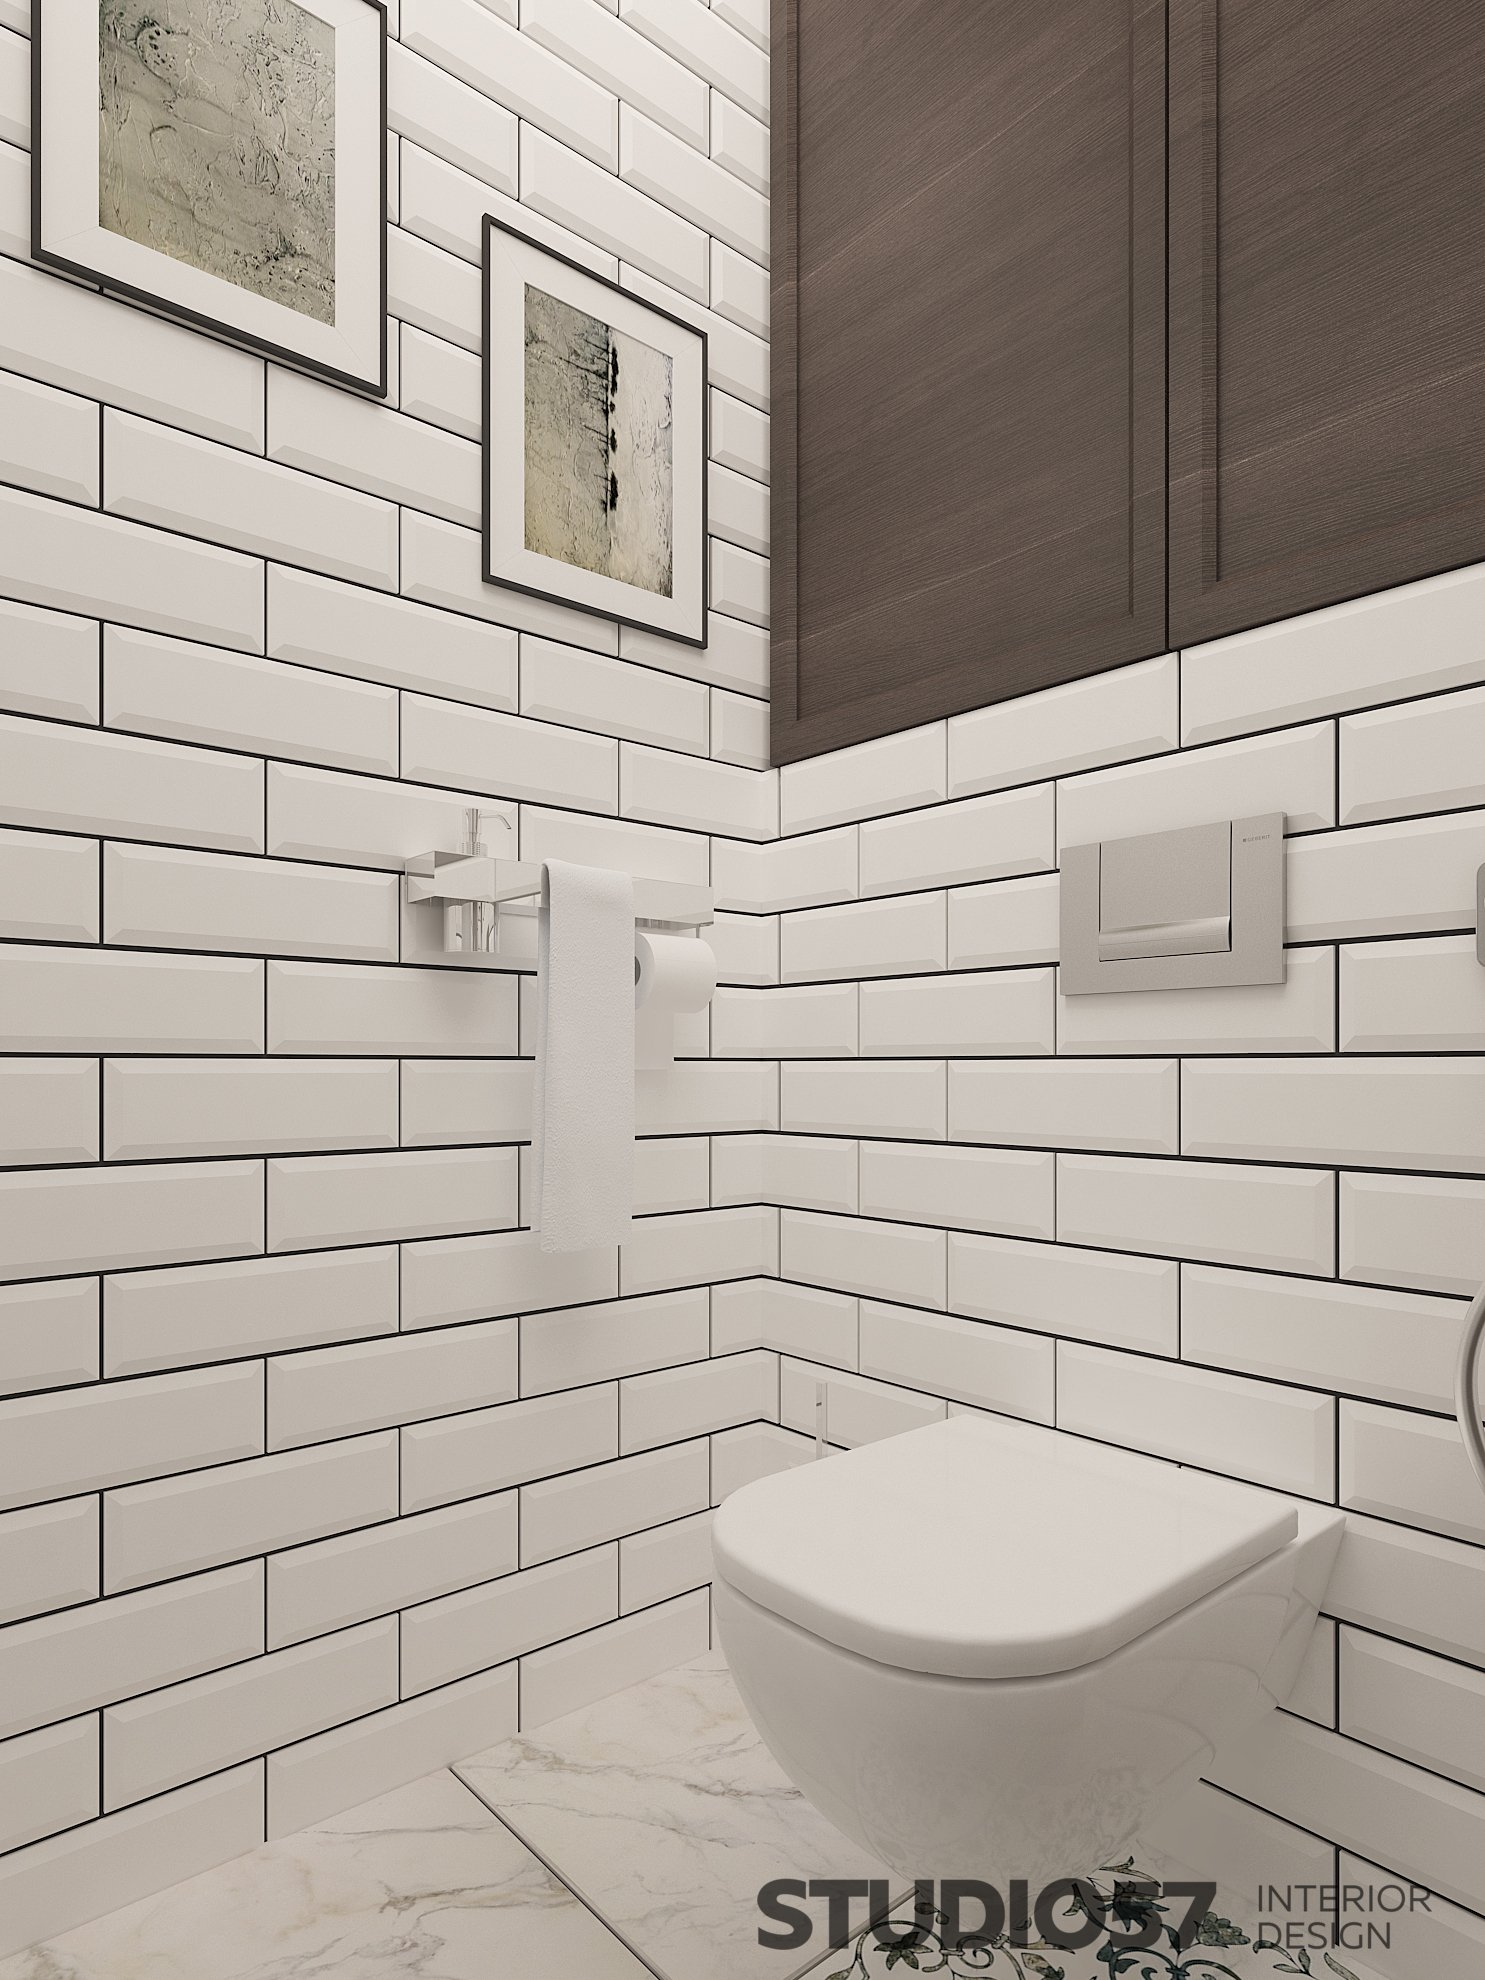 Toilet design with white rectangular tiles